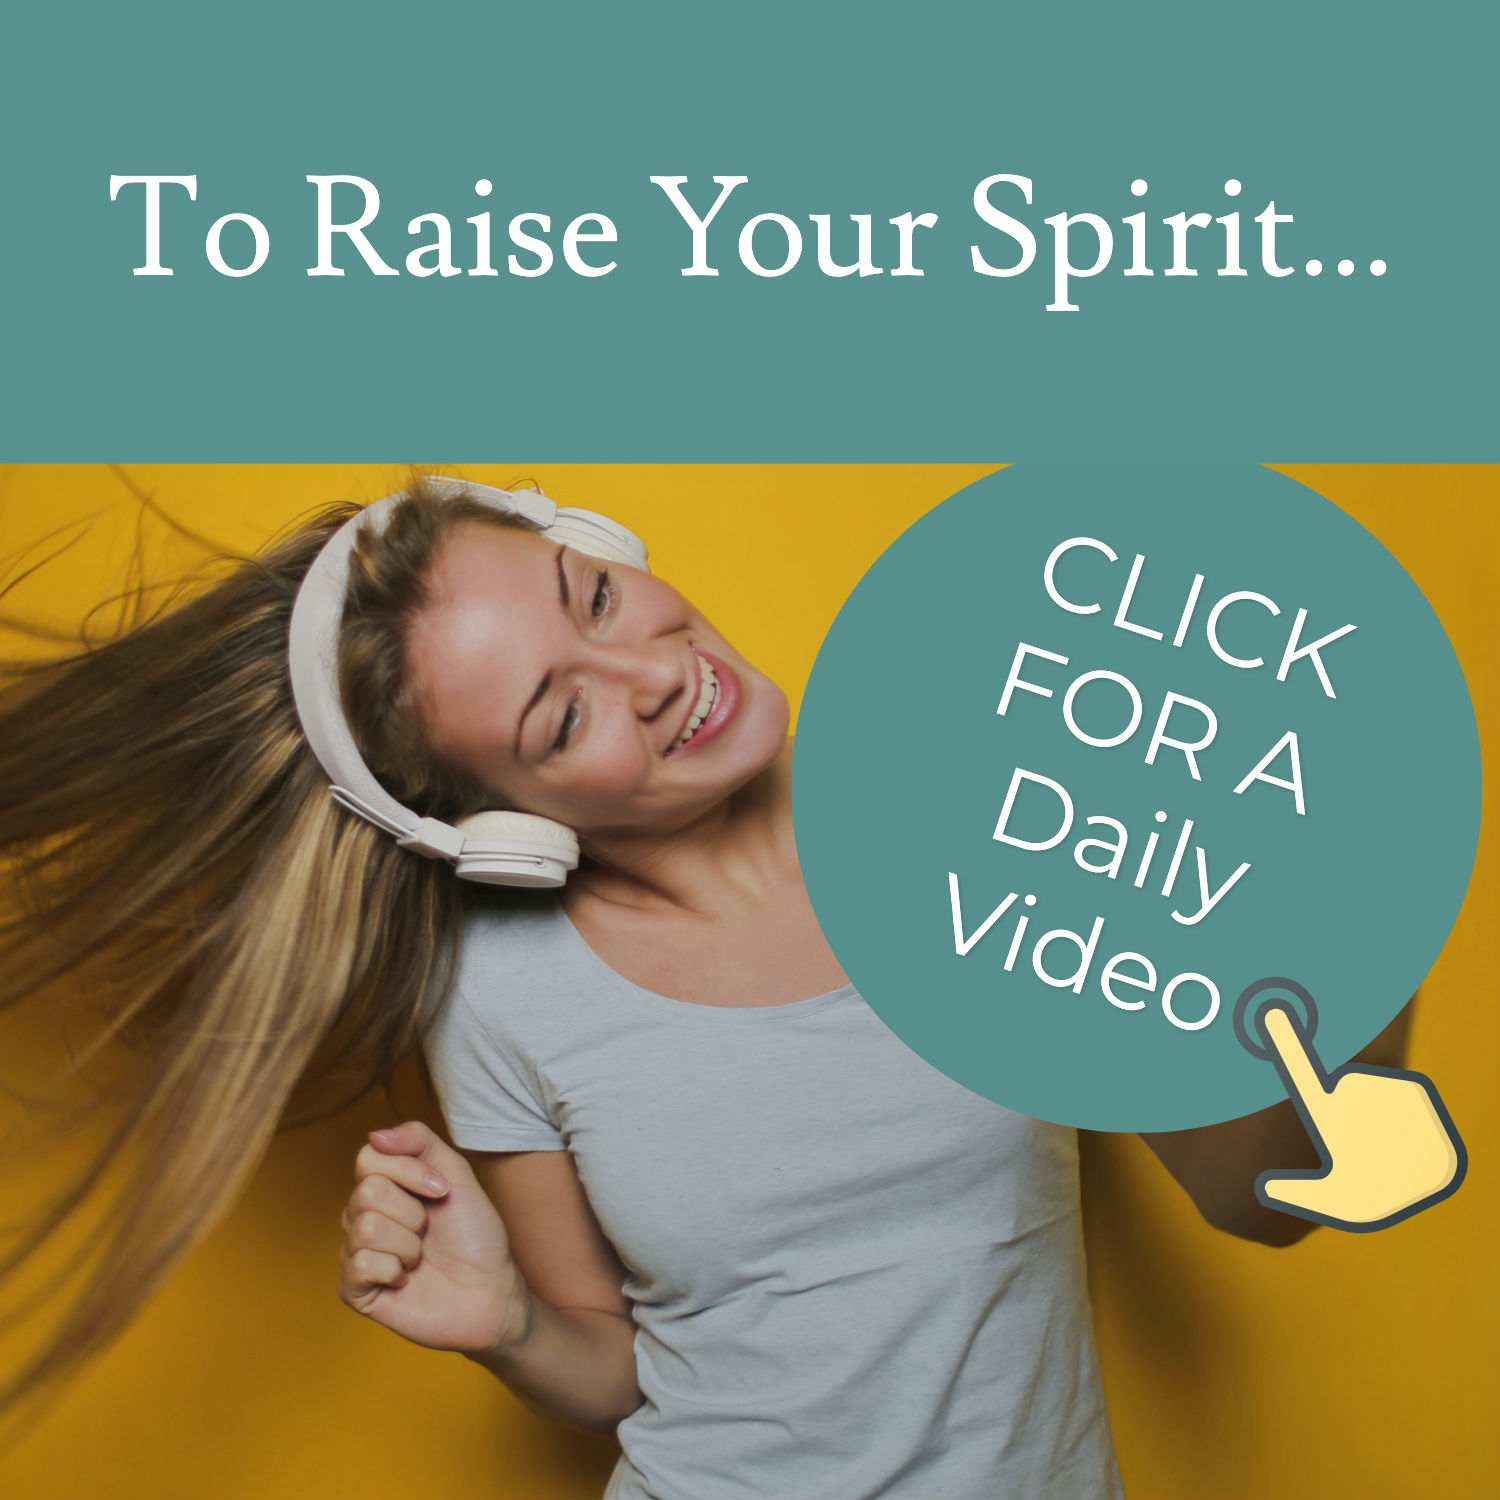 Raise Our Spirit With This Daily Video & Gift